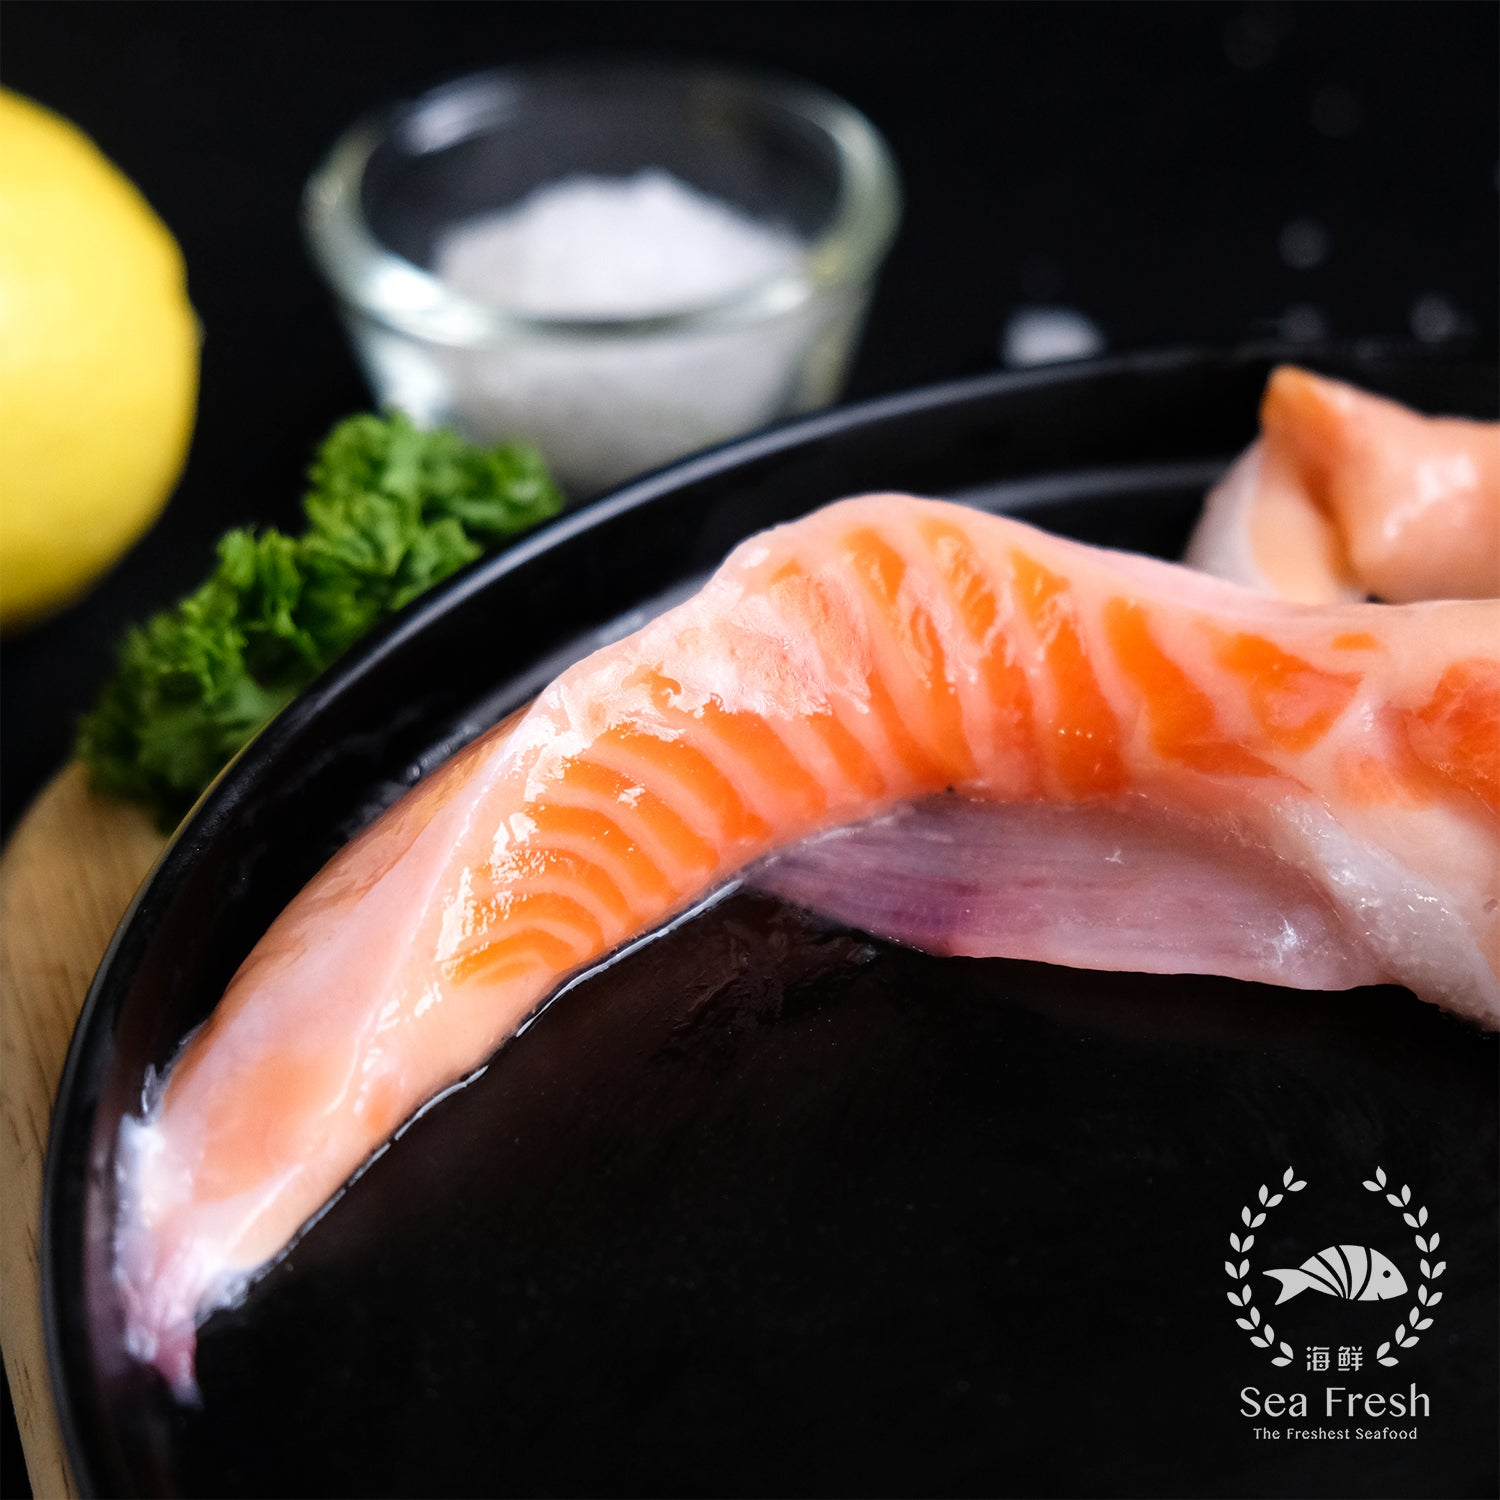 Sashimi Salmon Trout Belly / 三文鱼肚腩